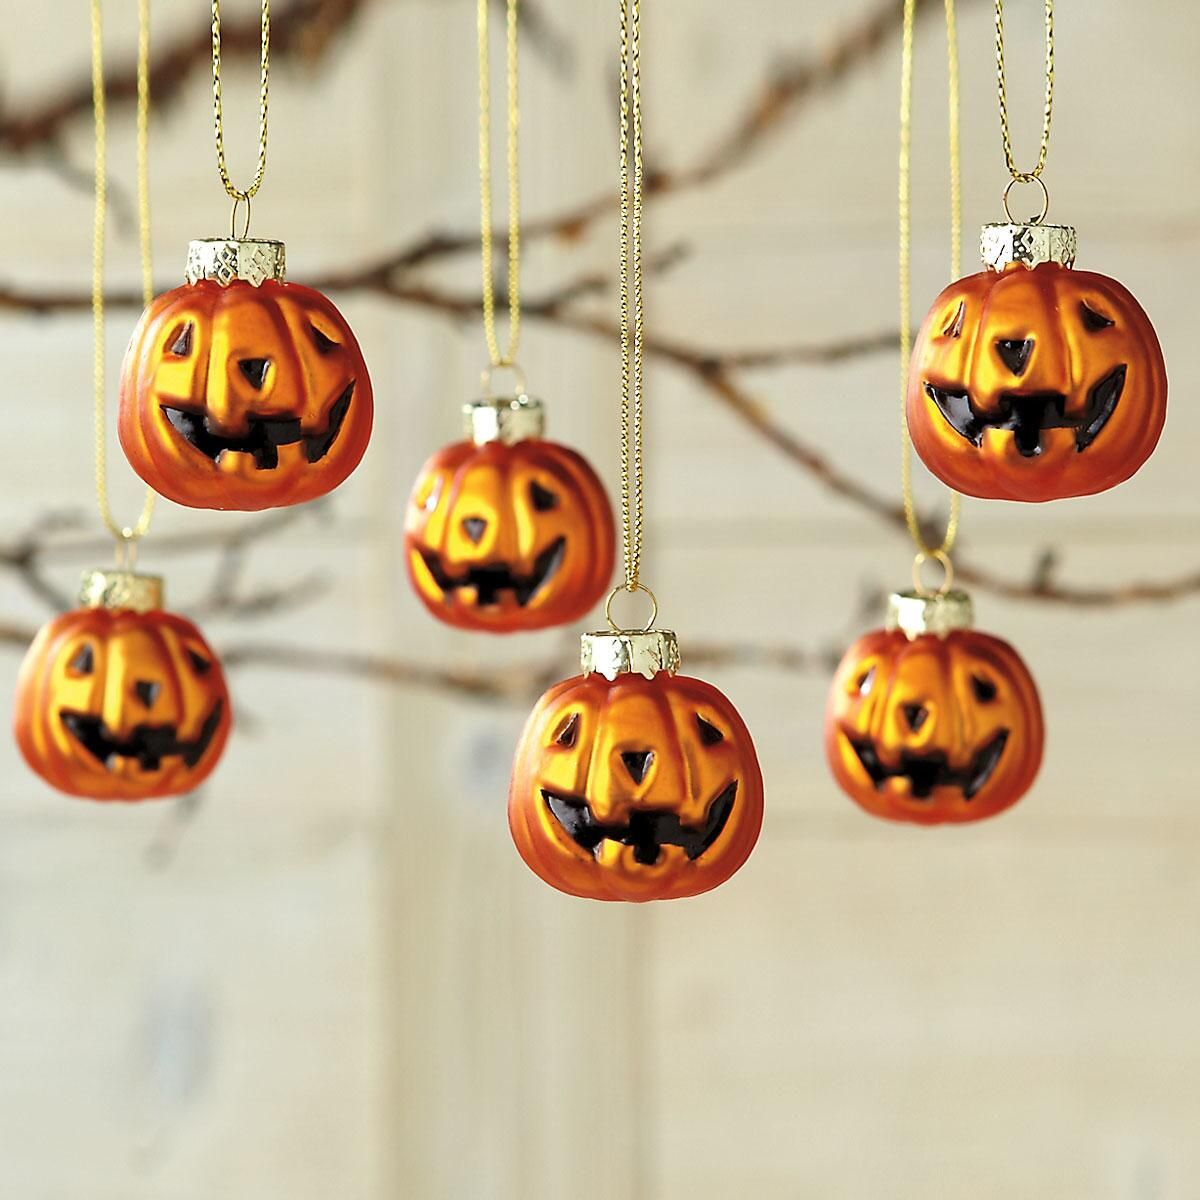 Glass Jack-O'-Lantern Ornaments